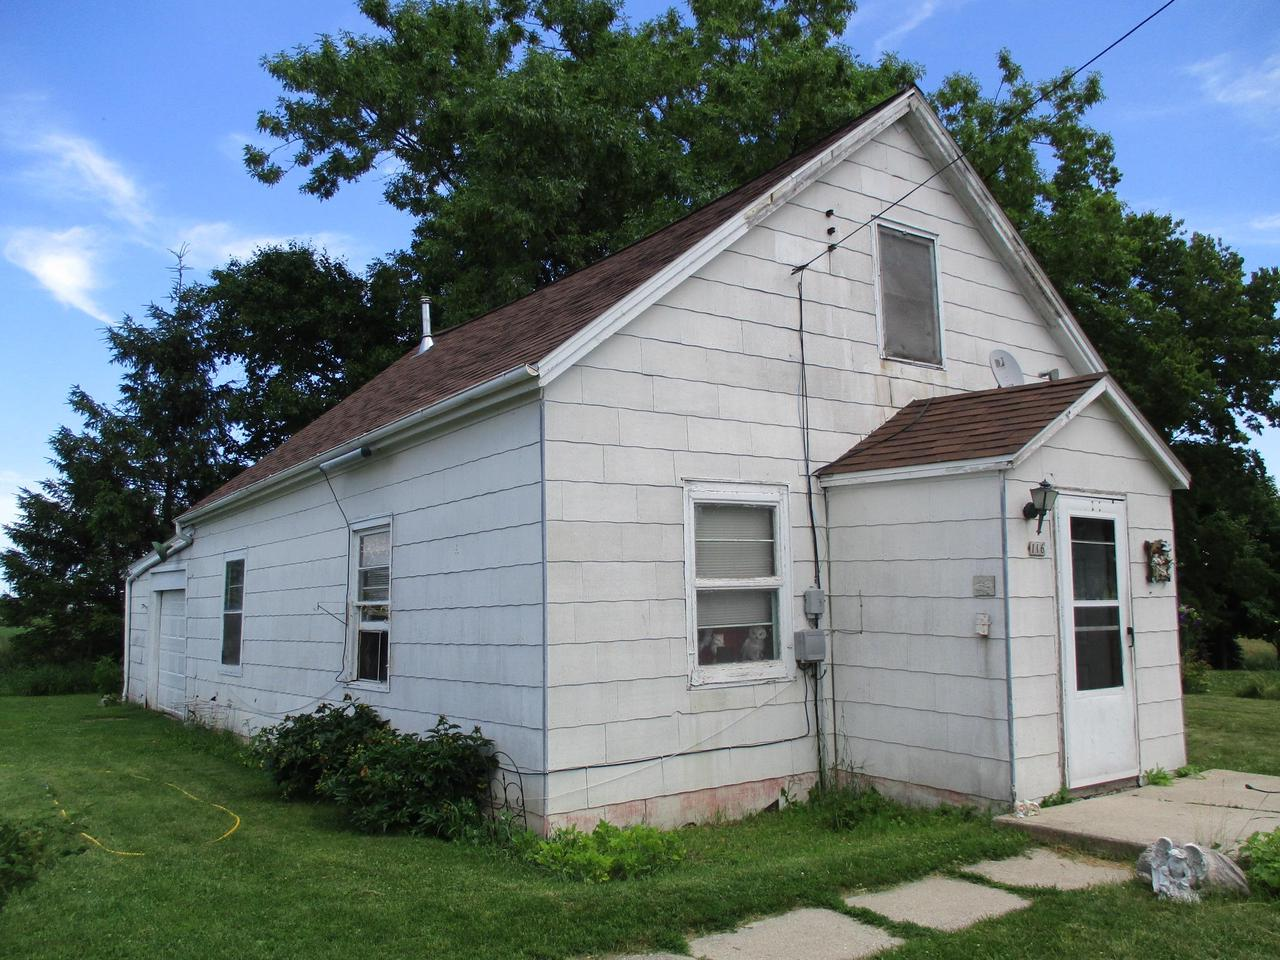 This 1 BR home with main floor laundry is a fixer upper so bring your tools and ideas. Would make a great rental property. There is no basement. Updated roof. 3-4 yr old propane furnace.